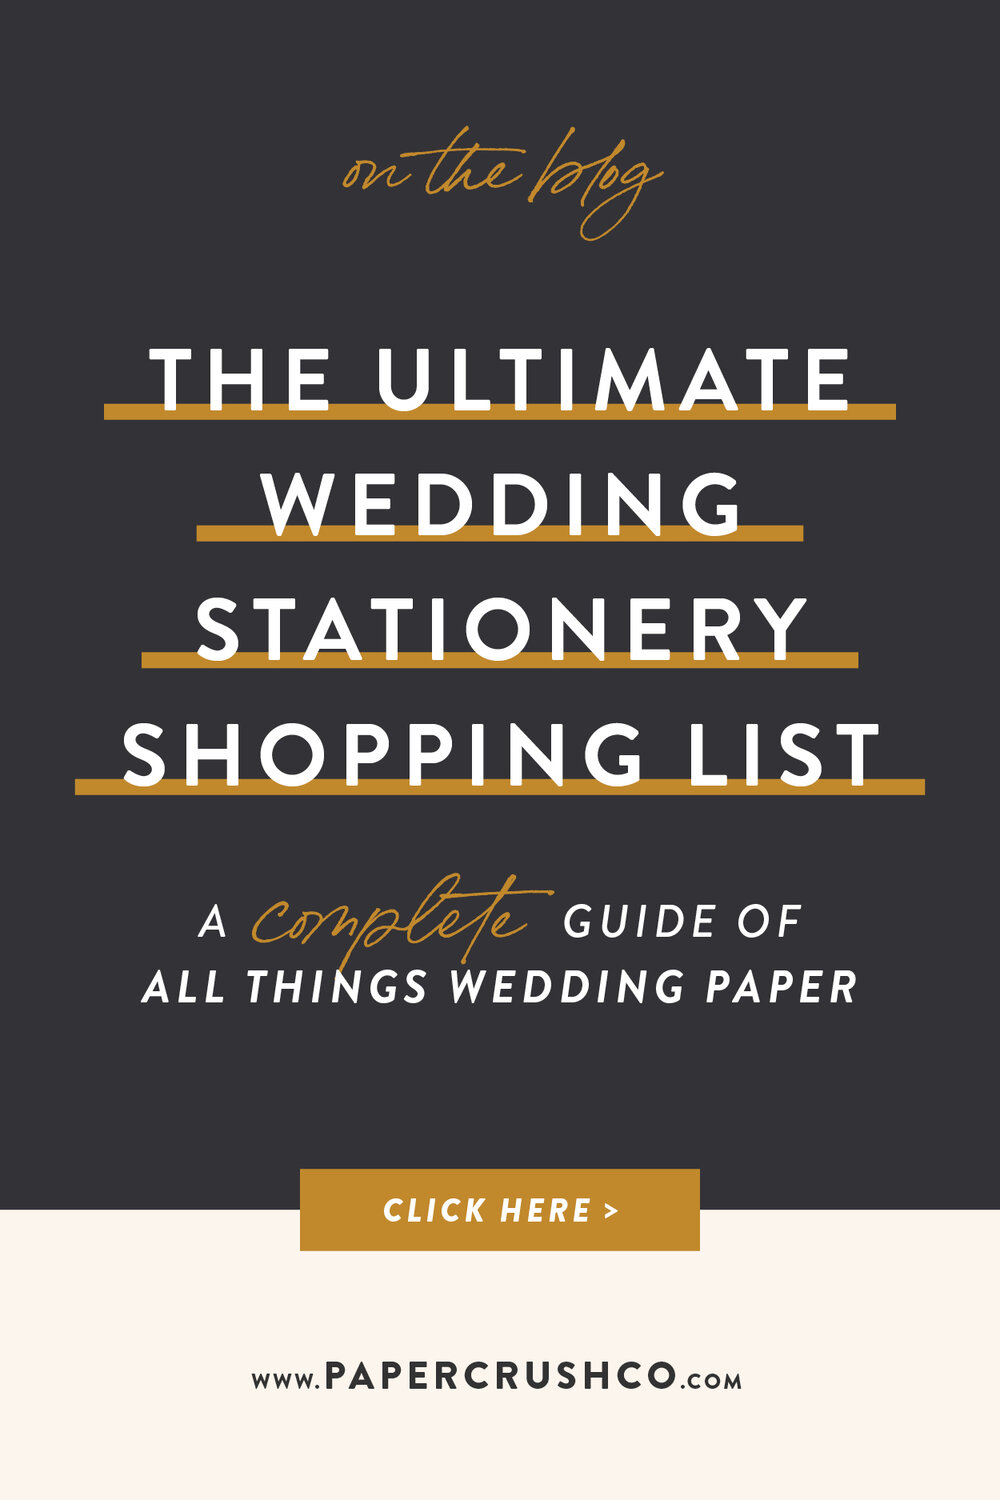 The Ultimate Wedding Stationery Shopping List